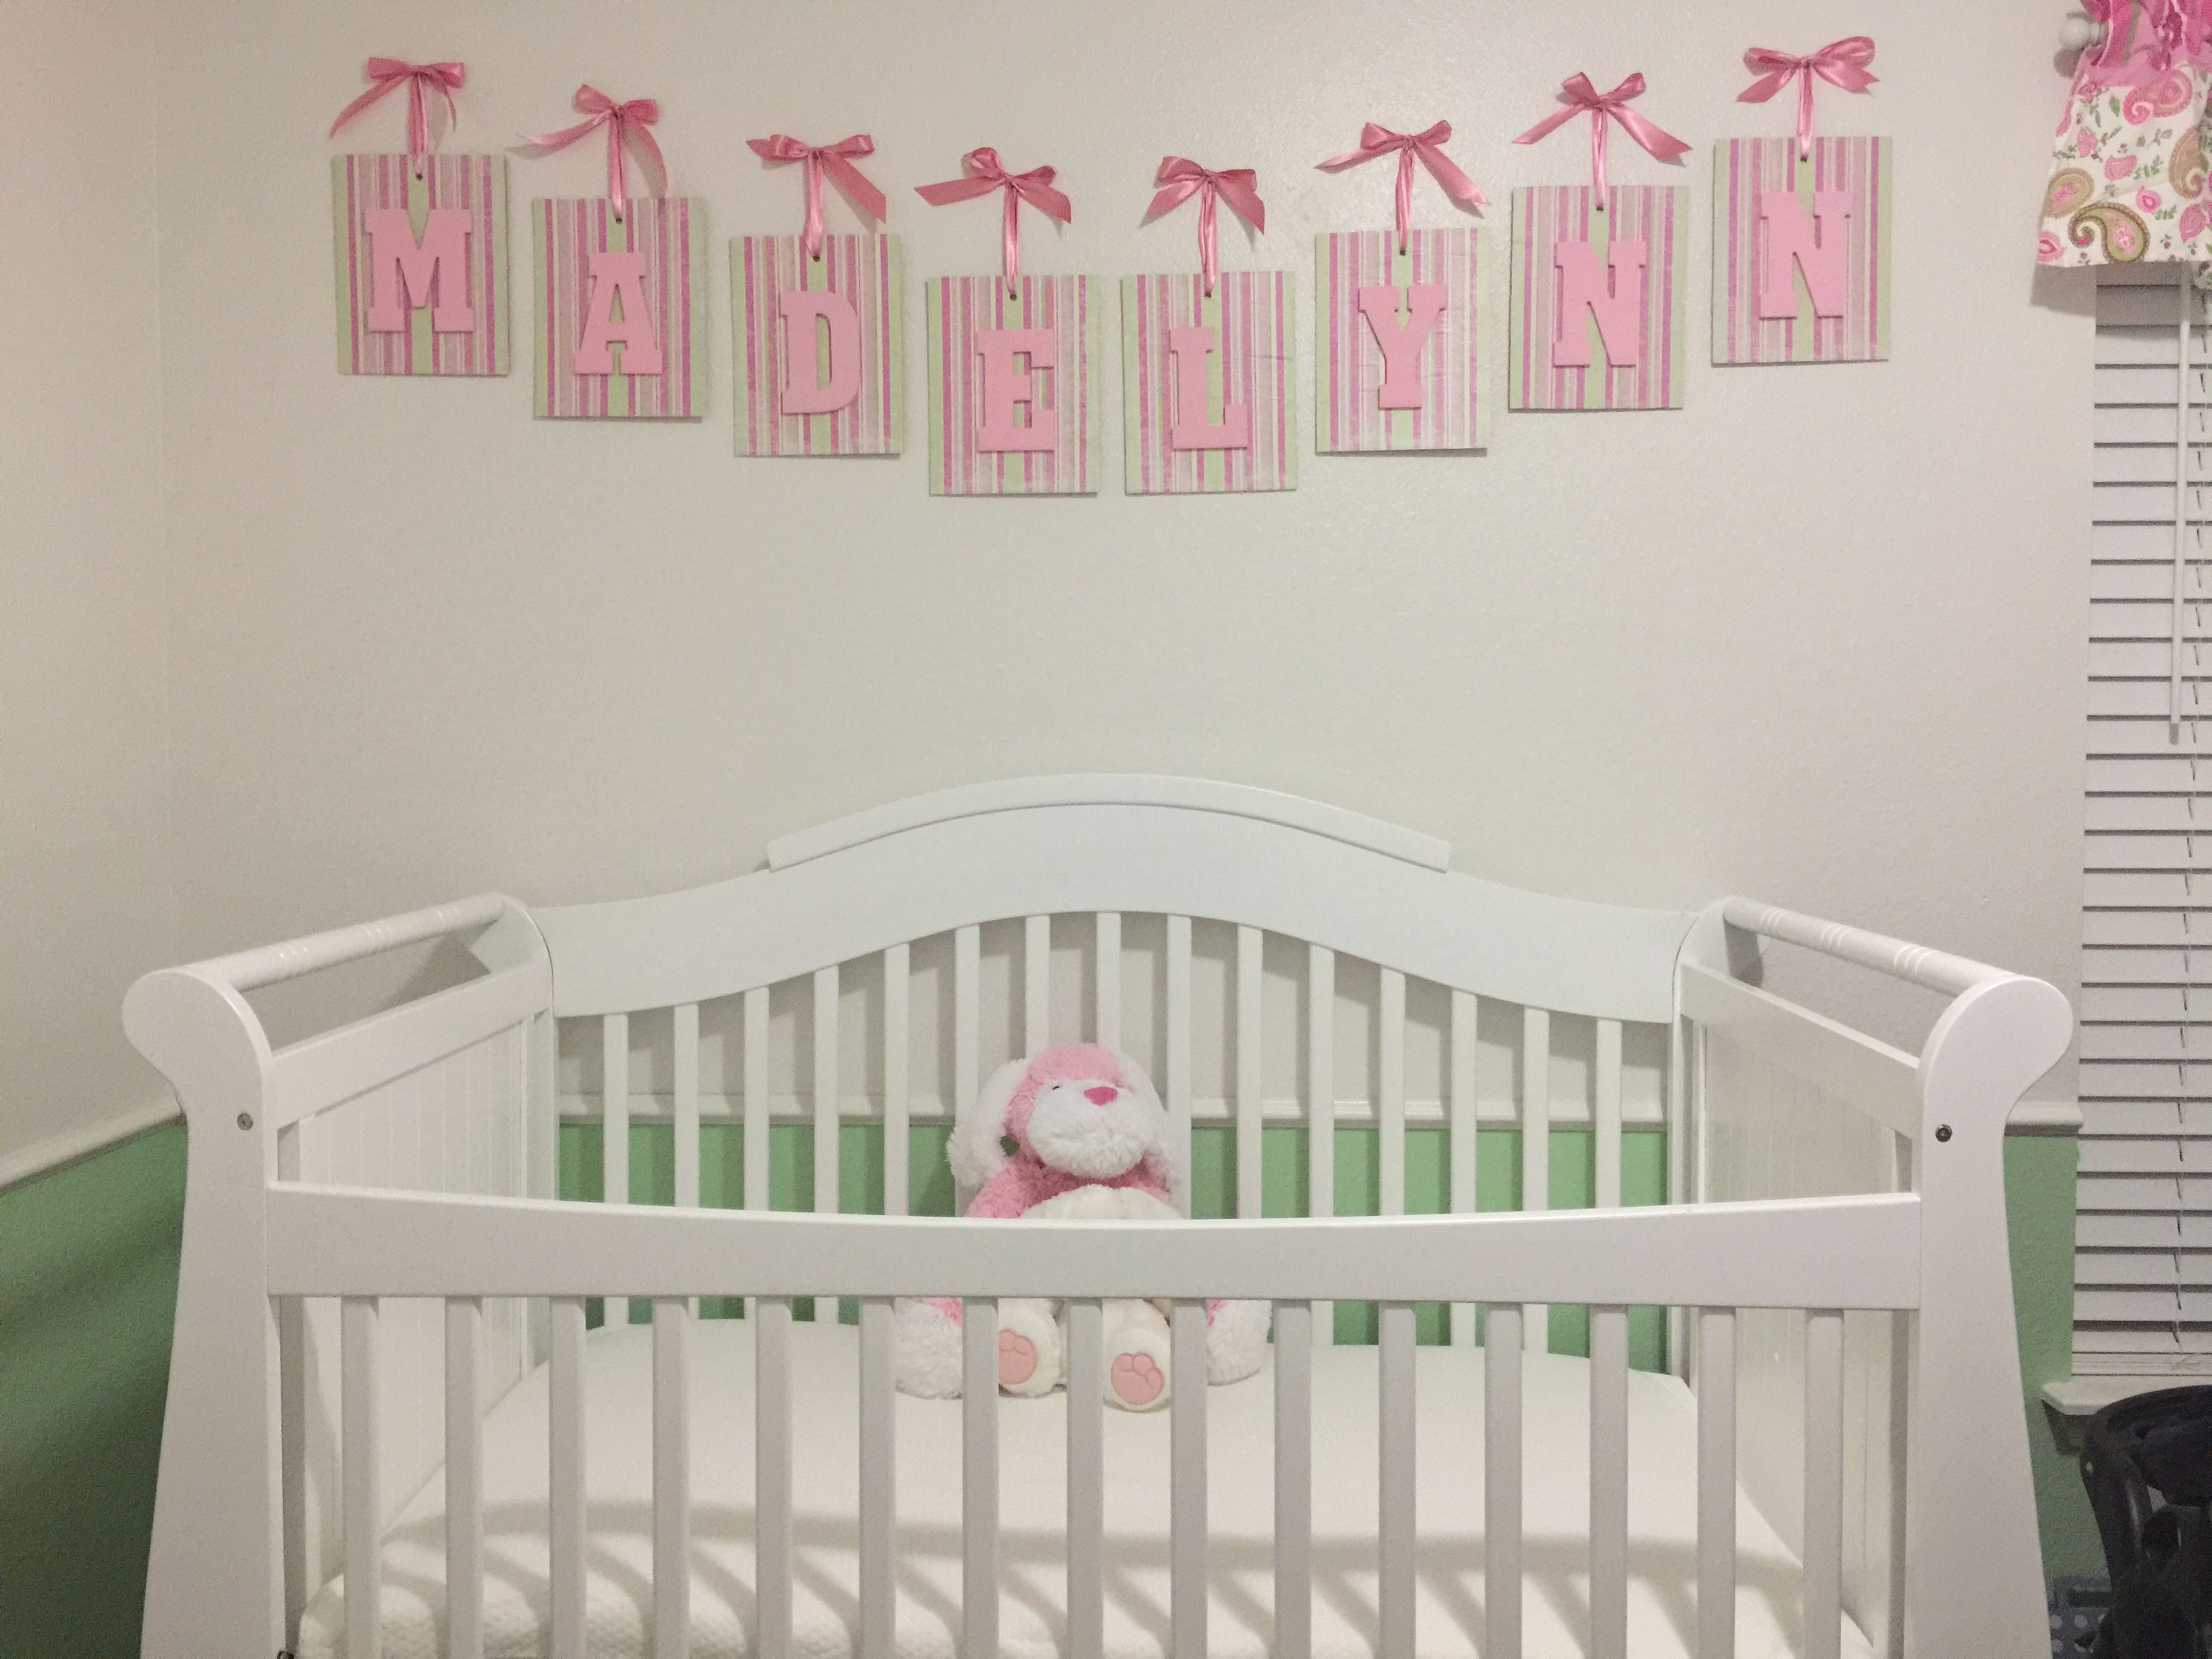 ideas white crib blue light unisex bed for elegant b decoration green wood and incredible decorating baby design cribs curtain including nursery room in valance using